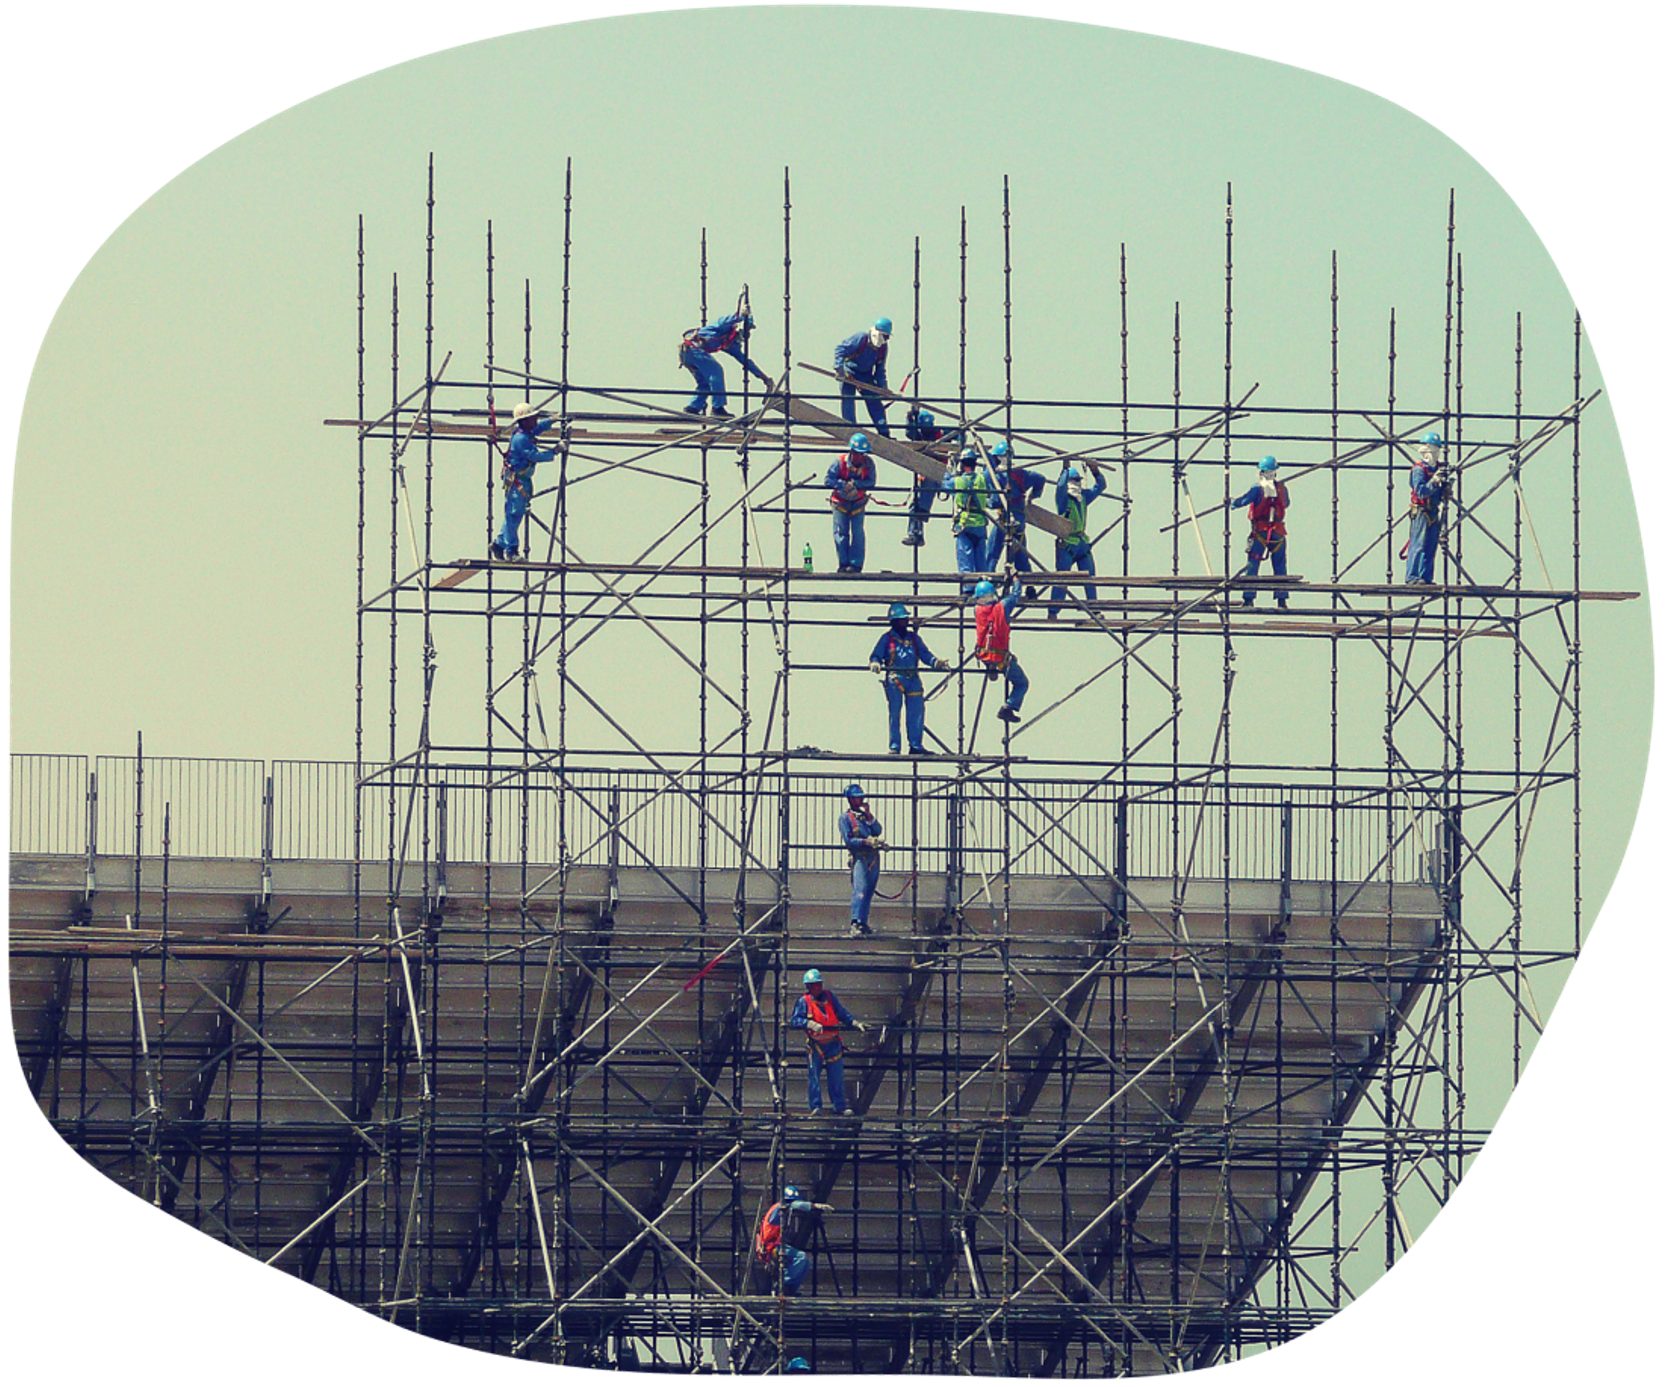 Workers constructing a stadium